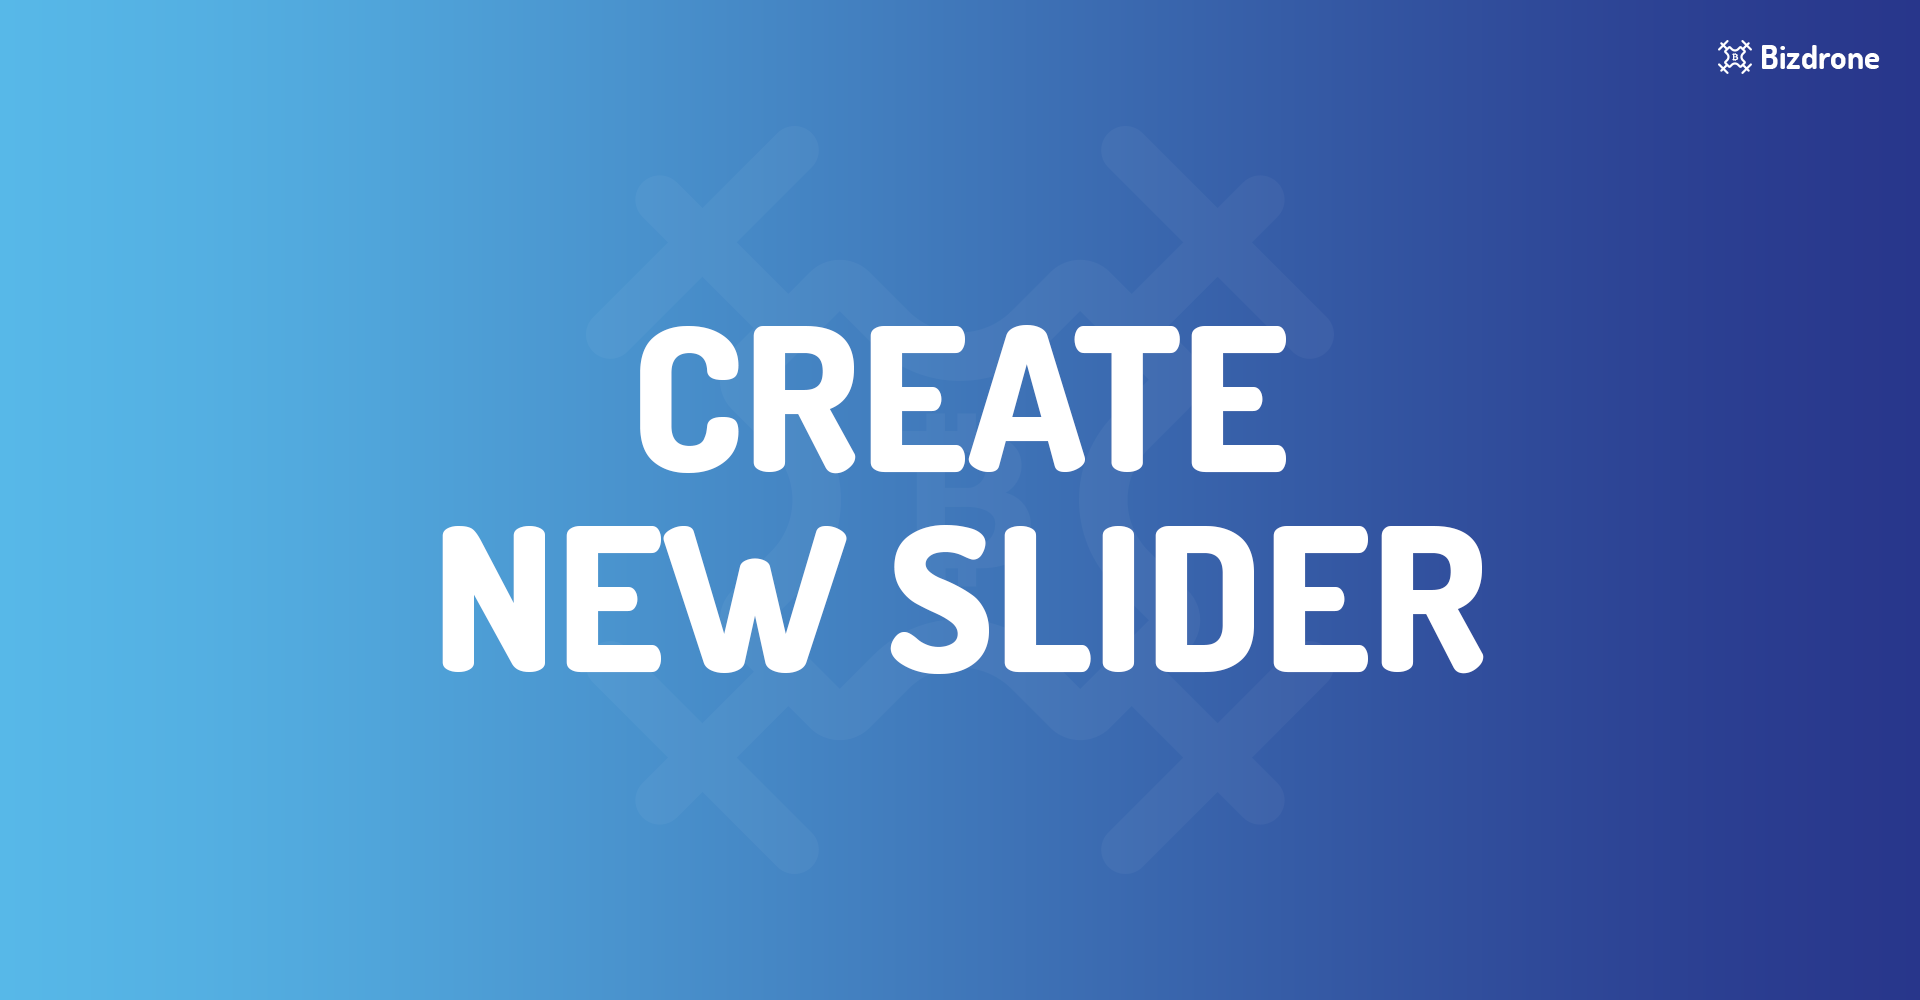 CREATE NEW SLIDER